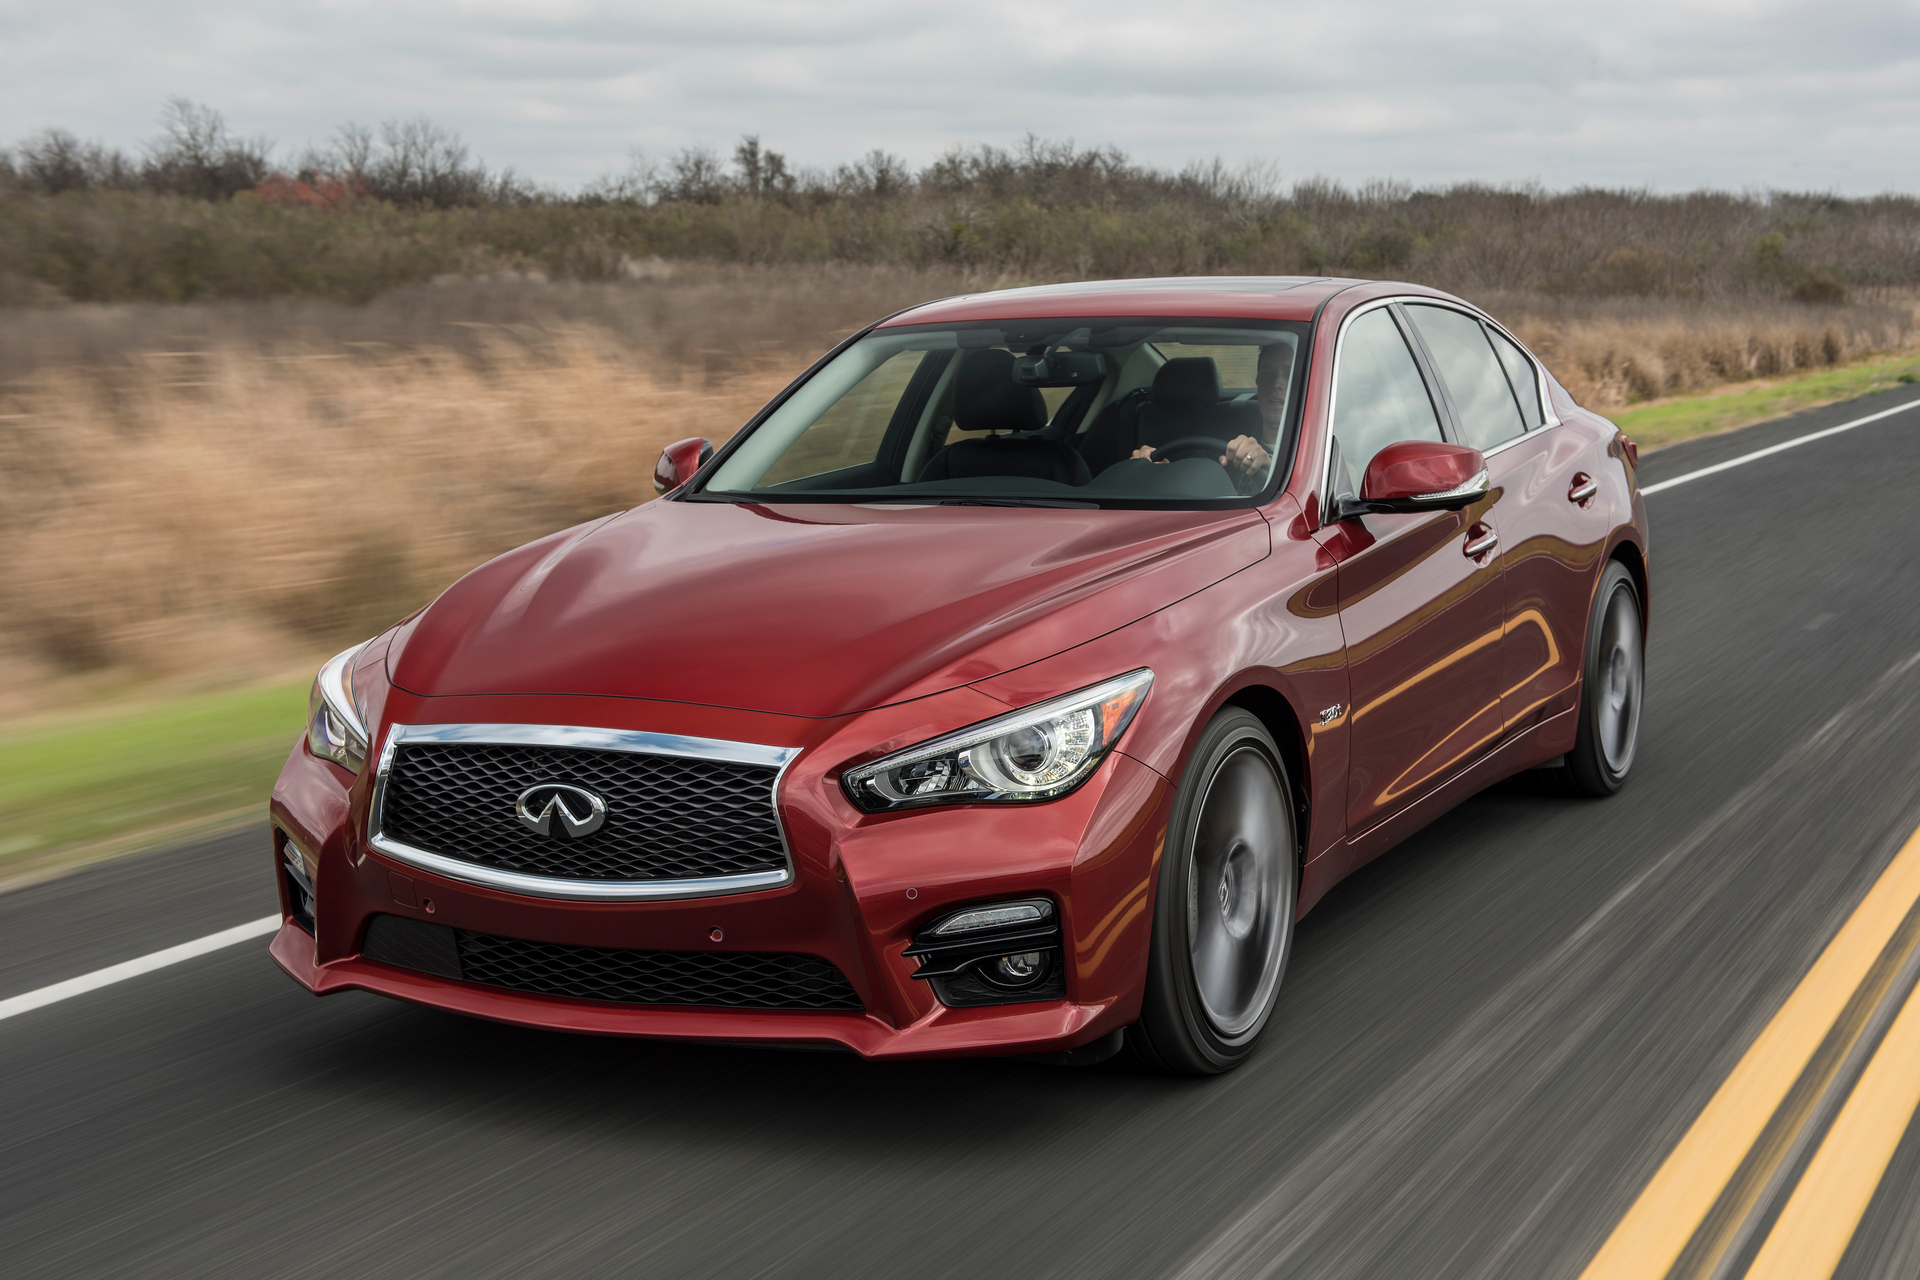 2016 Infiniti Q50 Red Sport 400 © Nissan Motor Co., Ltd.